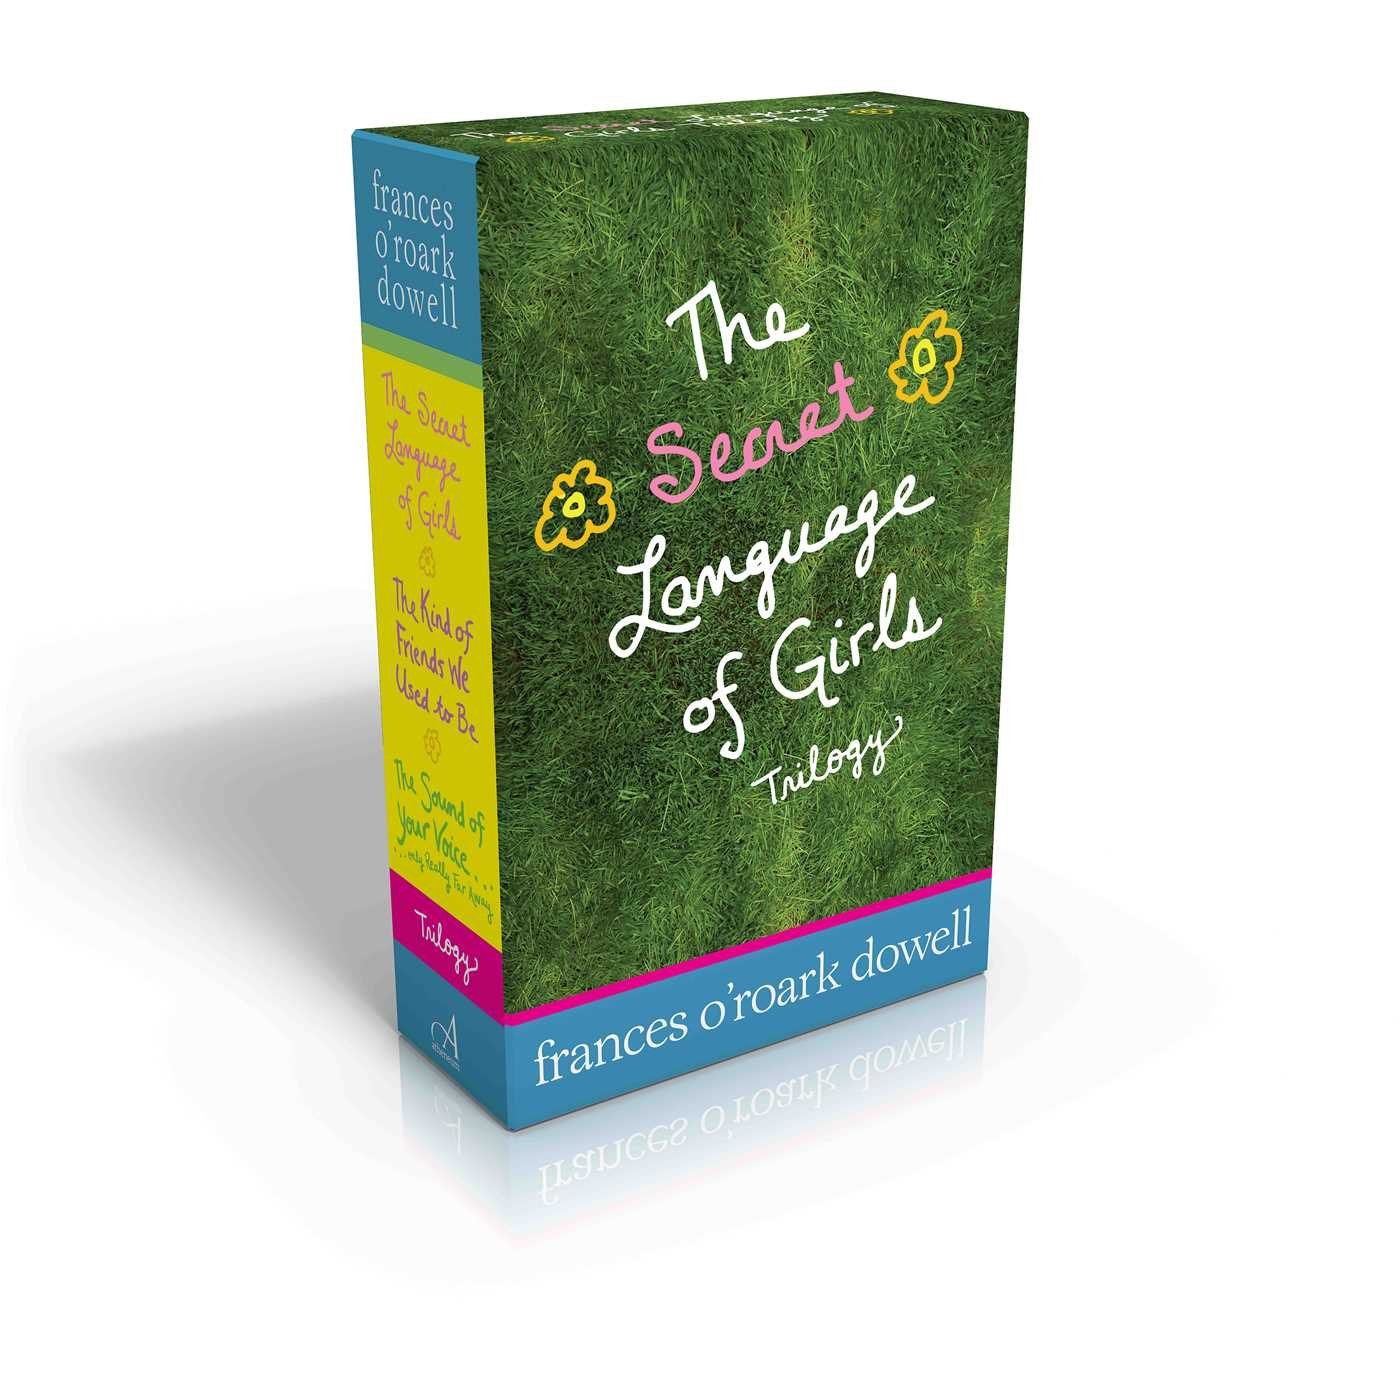 The Secret Language of Girls Trilogy: The Secret Language of Girls; The Kind of Friends We Used to Be; The Sound of Your Voice, Only Really Far Away by Atheneum Books for Young Readers